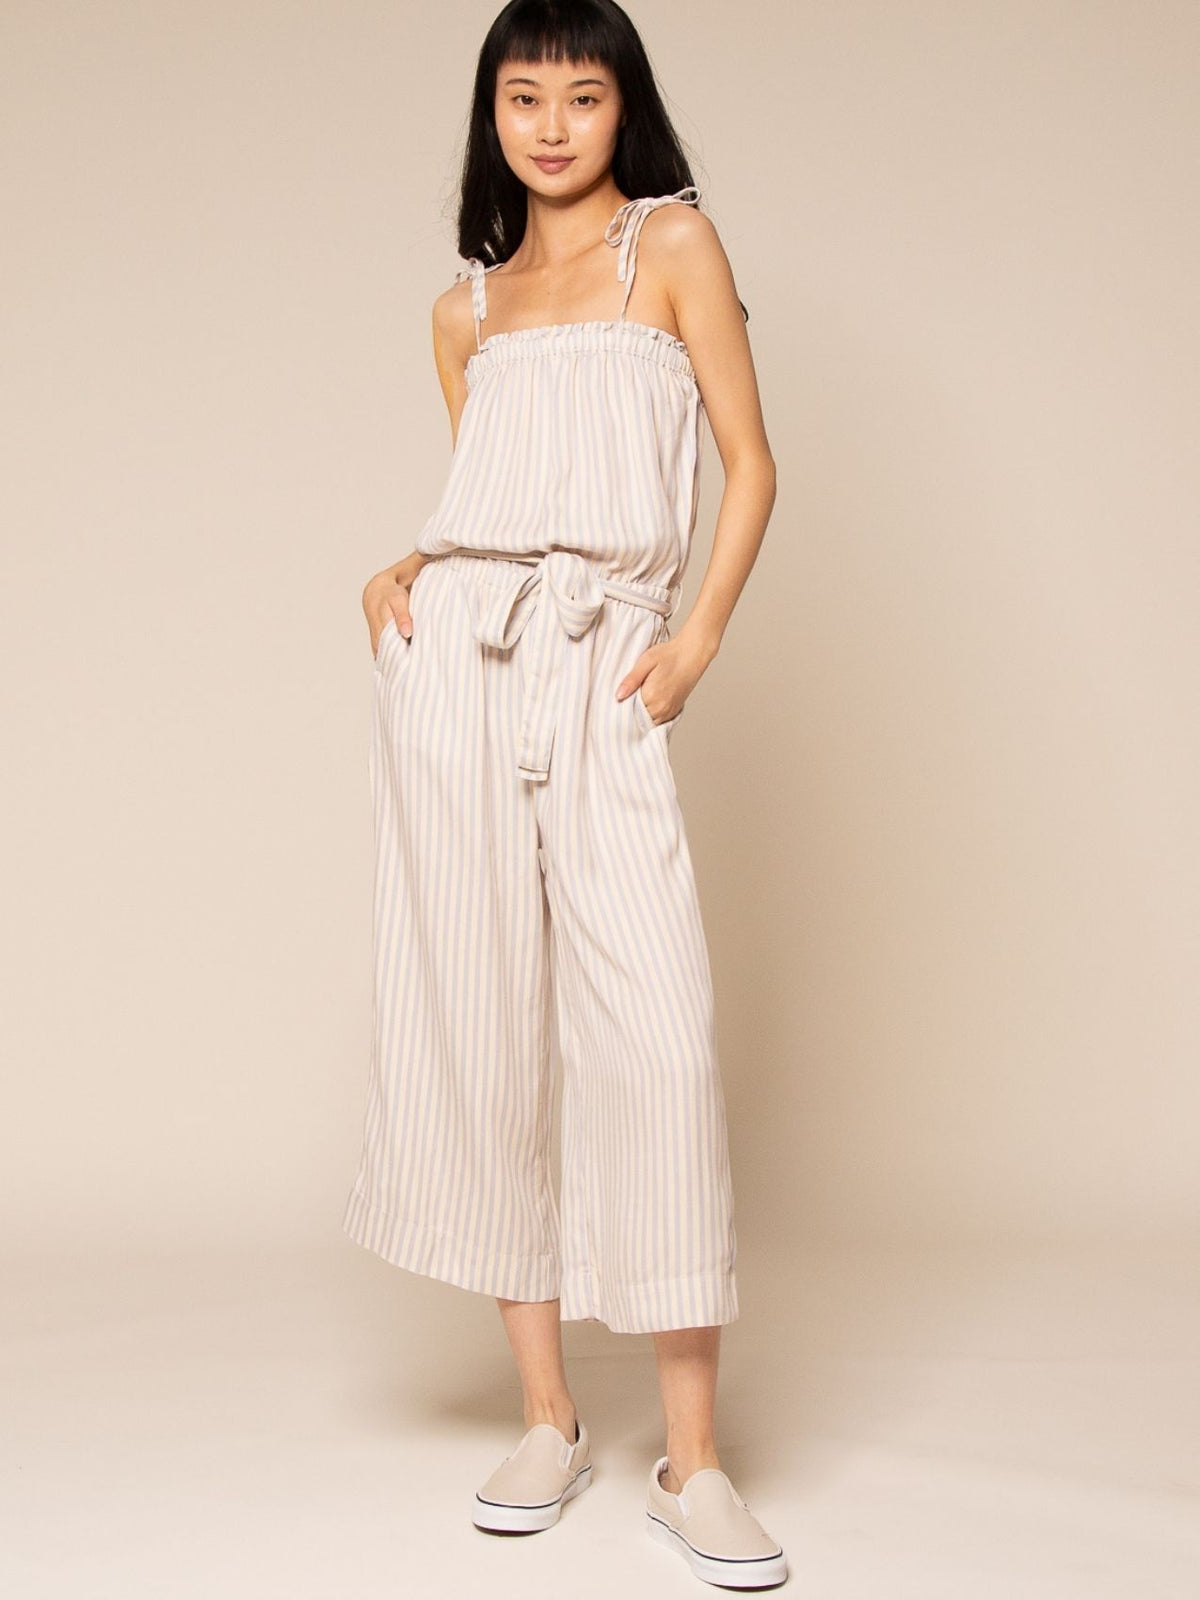 GIVERNY JUMPSUIT - PRE PACK 6 UNITS